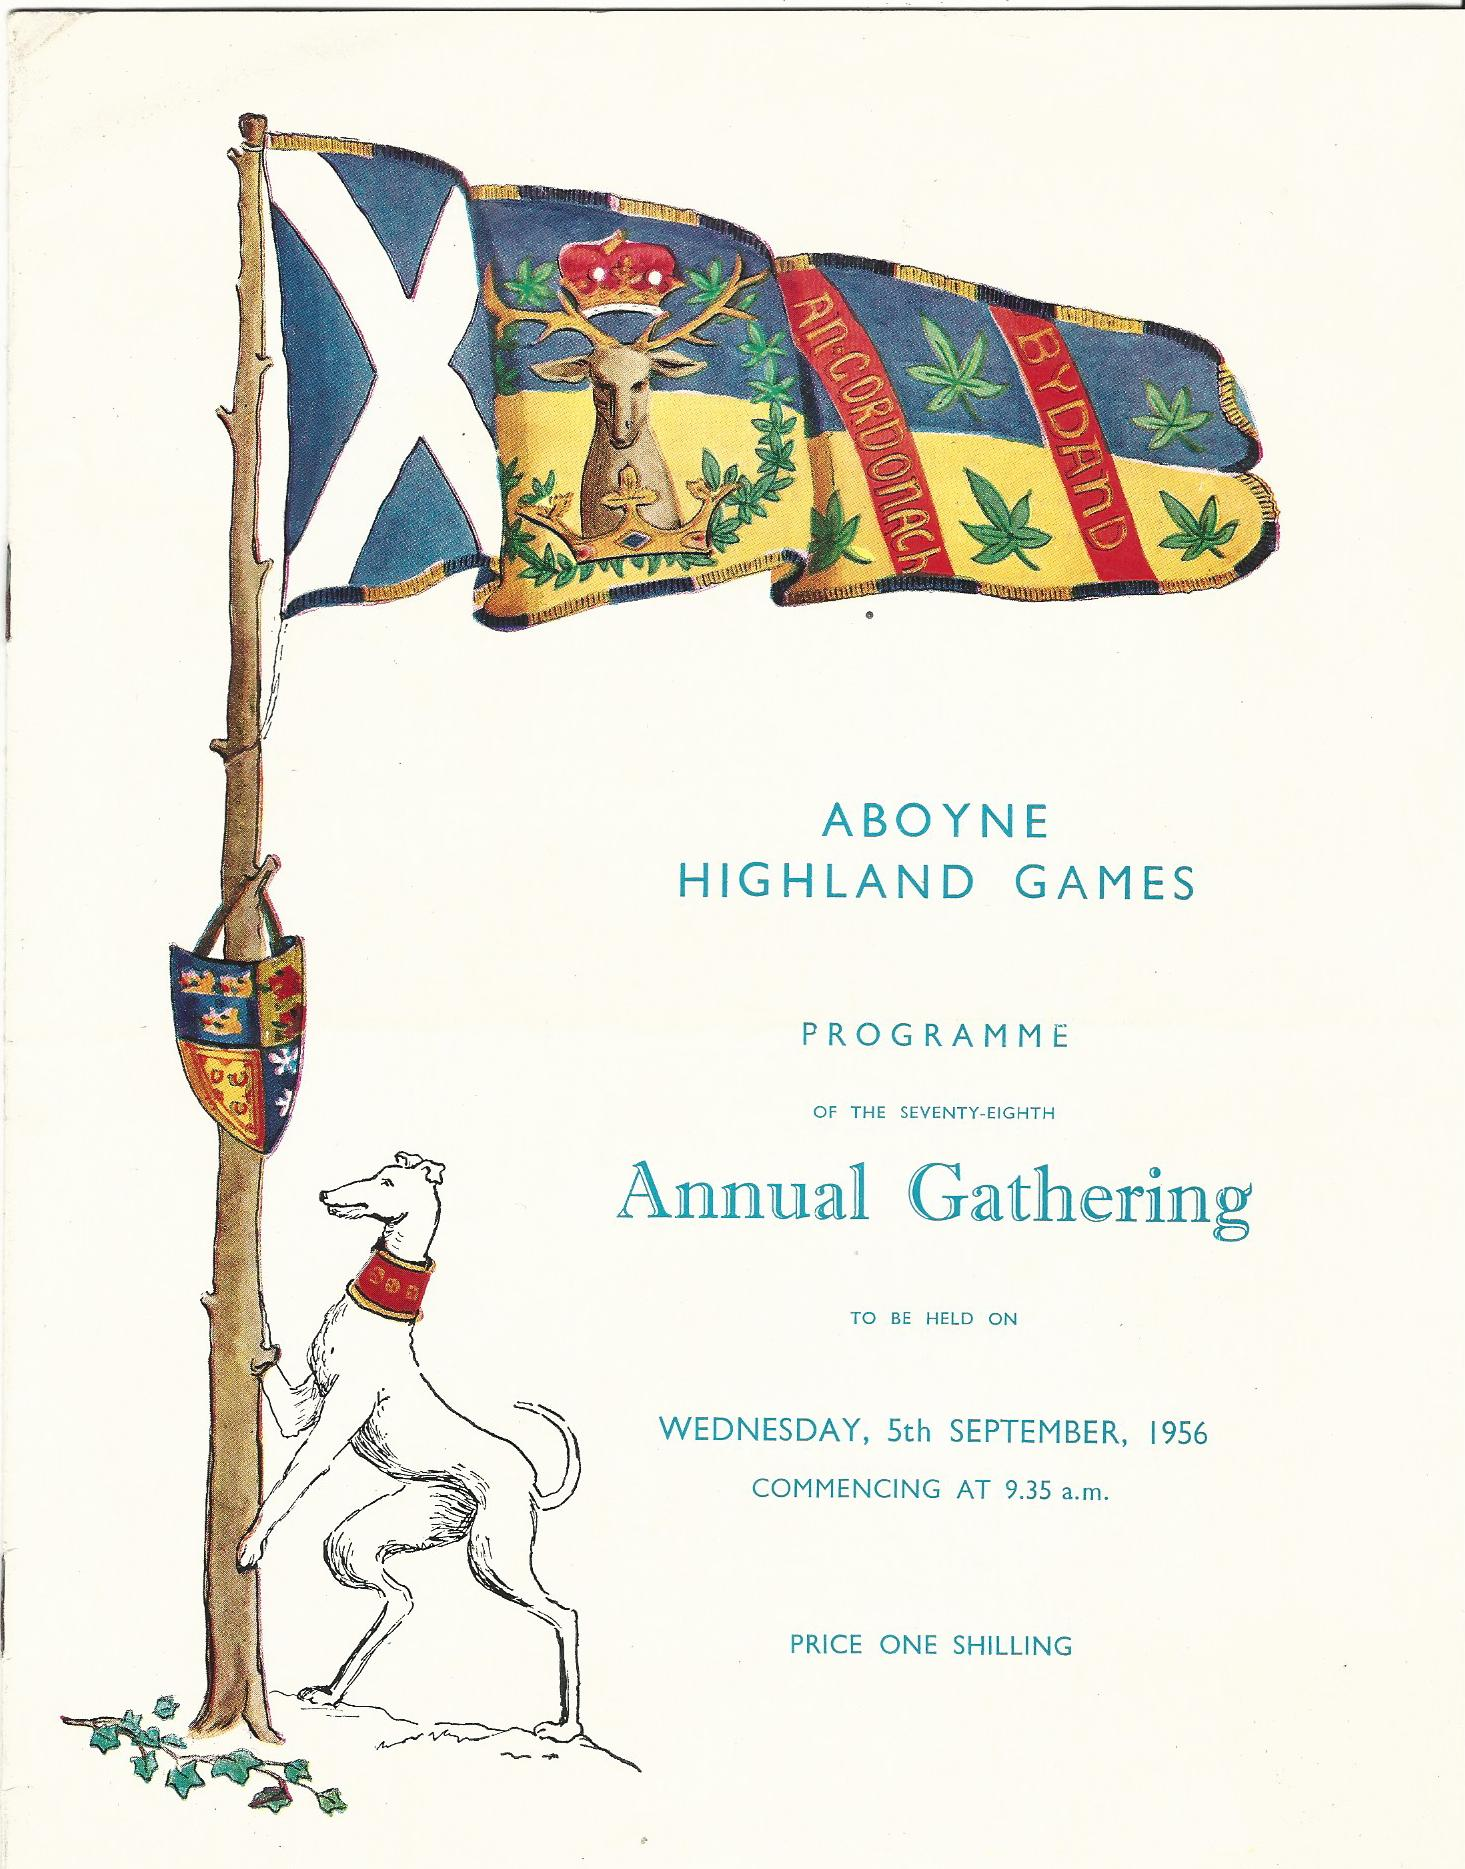 Image for Aboyne Highland Games: Programme of the Seventy-Eighth Annual Gathering to be held on Wednesday, 5th September 1956.